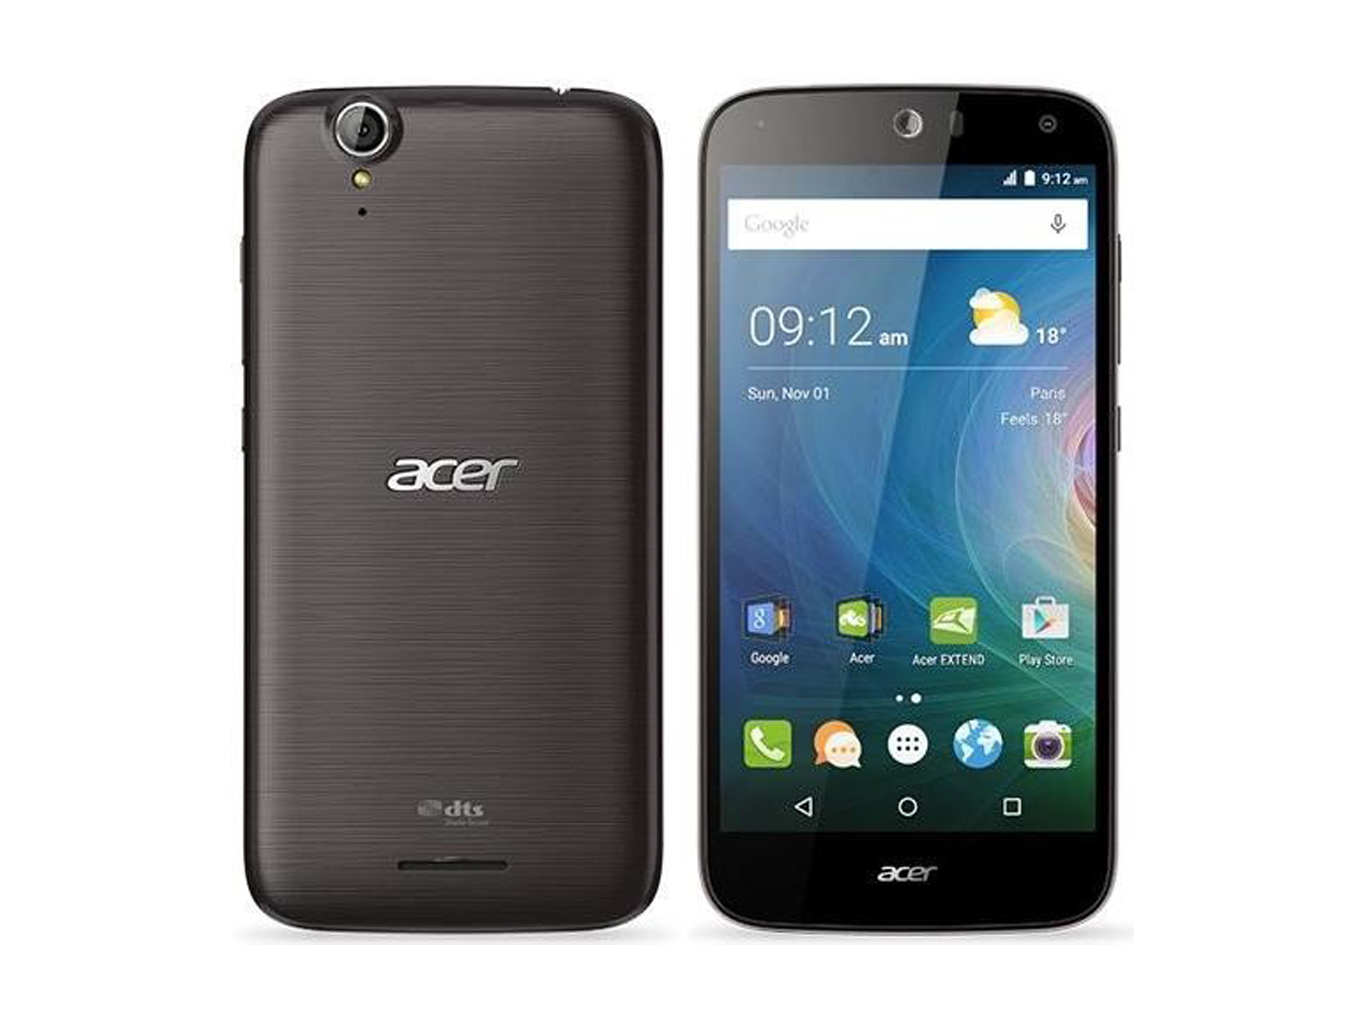 best service 07885 c97e8 Acer Liquid Z630 Smartphone Review - NotebookCheck.net Reviews